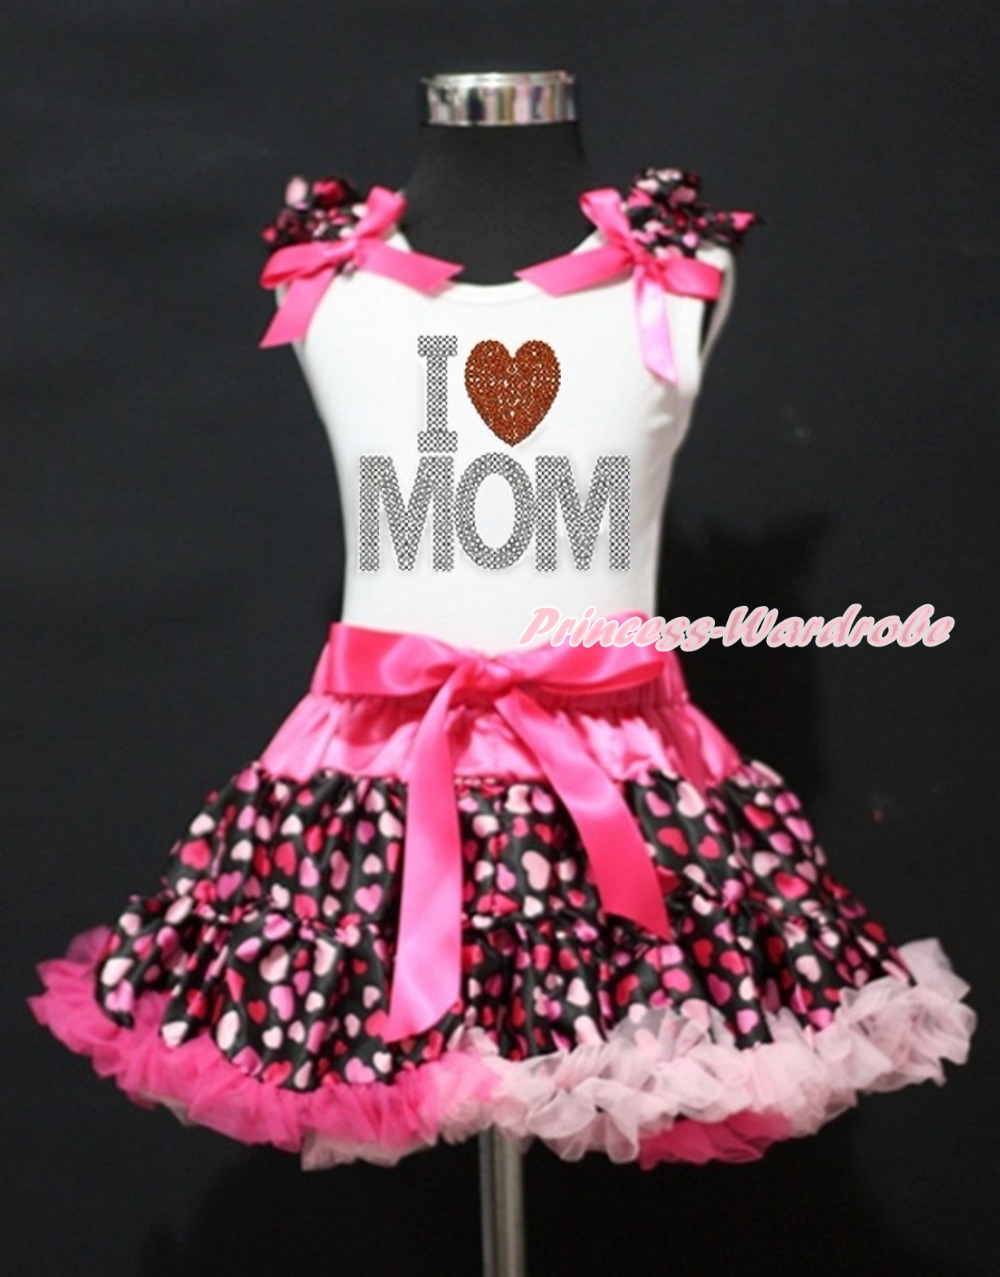 Mommy's day White Top Rhinestone Mother's Day Love Heart Hot Pink Heart Girl Skirt 1-8Y MAPSA0012 rhinestone happy easter white top shirt hot pink bunny rabbit satin trim baby girl skirt set 1 8y mapsa0494